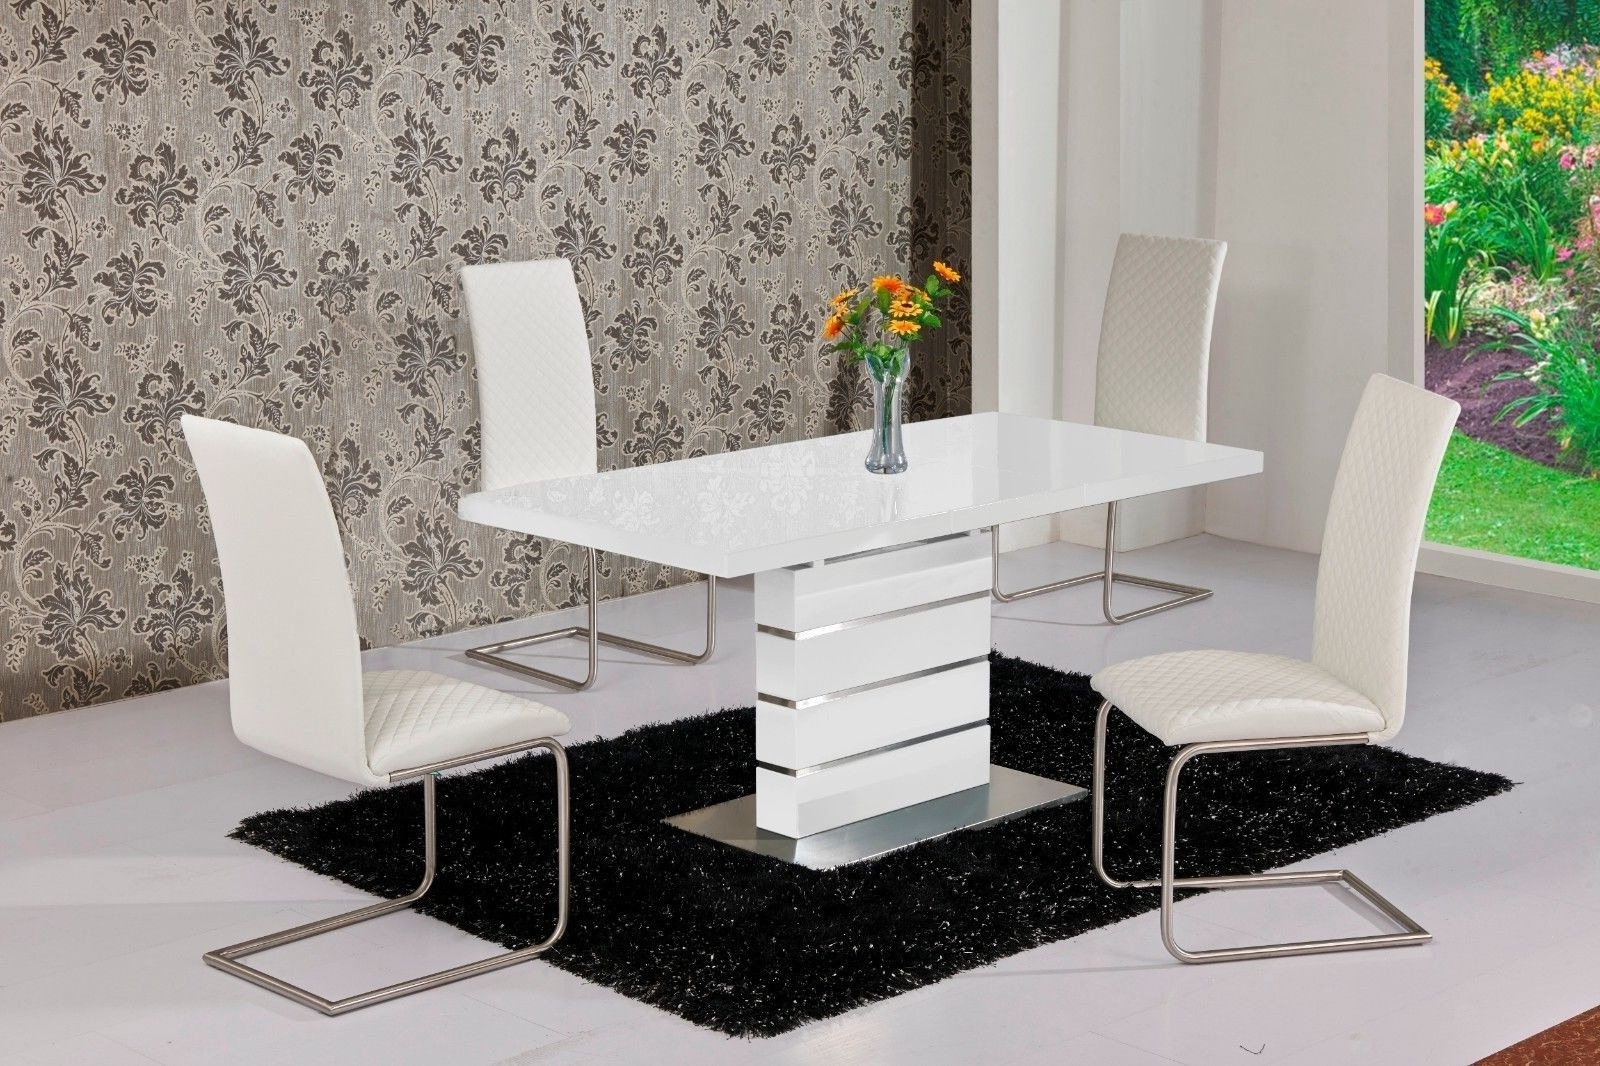 Mace High Gloss Extending 120 160 Dining Table & Chair Set – White Regarding Fashionable Extendable Dining Tables With 6 Chairs (View 18 of 25)